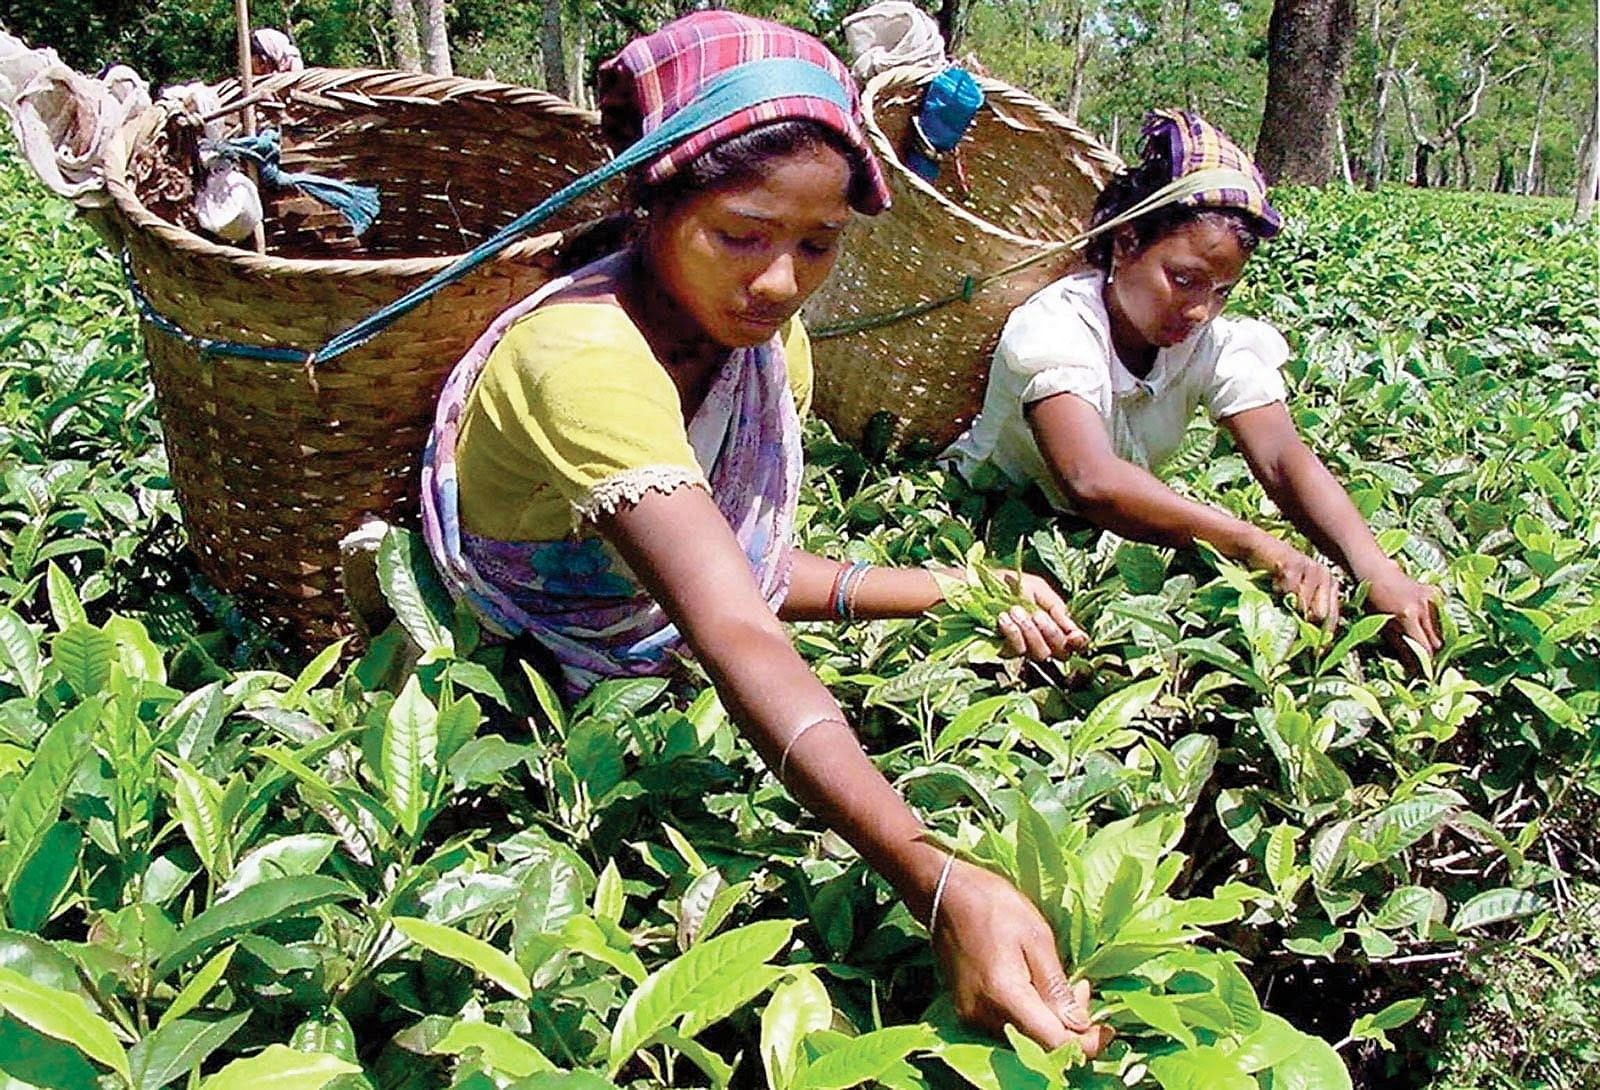 Many unsuspecting children, especially minor girls, are being lured in large numbers from the tea gardens of Assam into bonded labour, sexual exploitation and even forced marriage. (Image for representational purpose only)